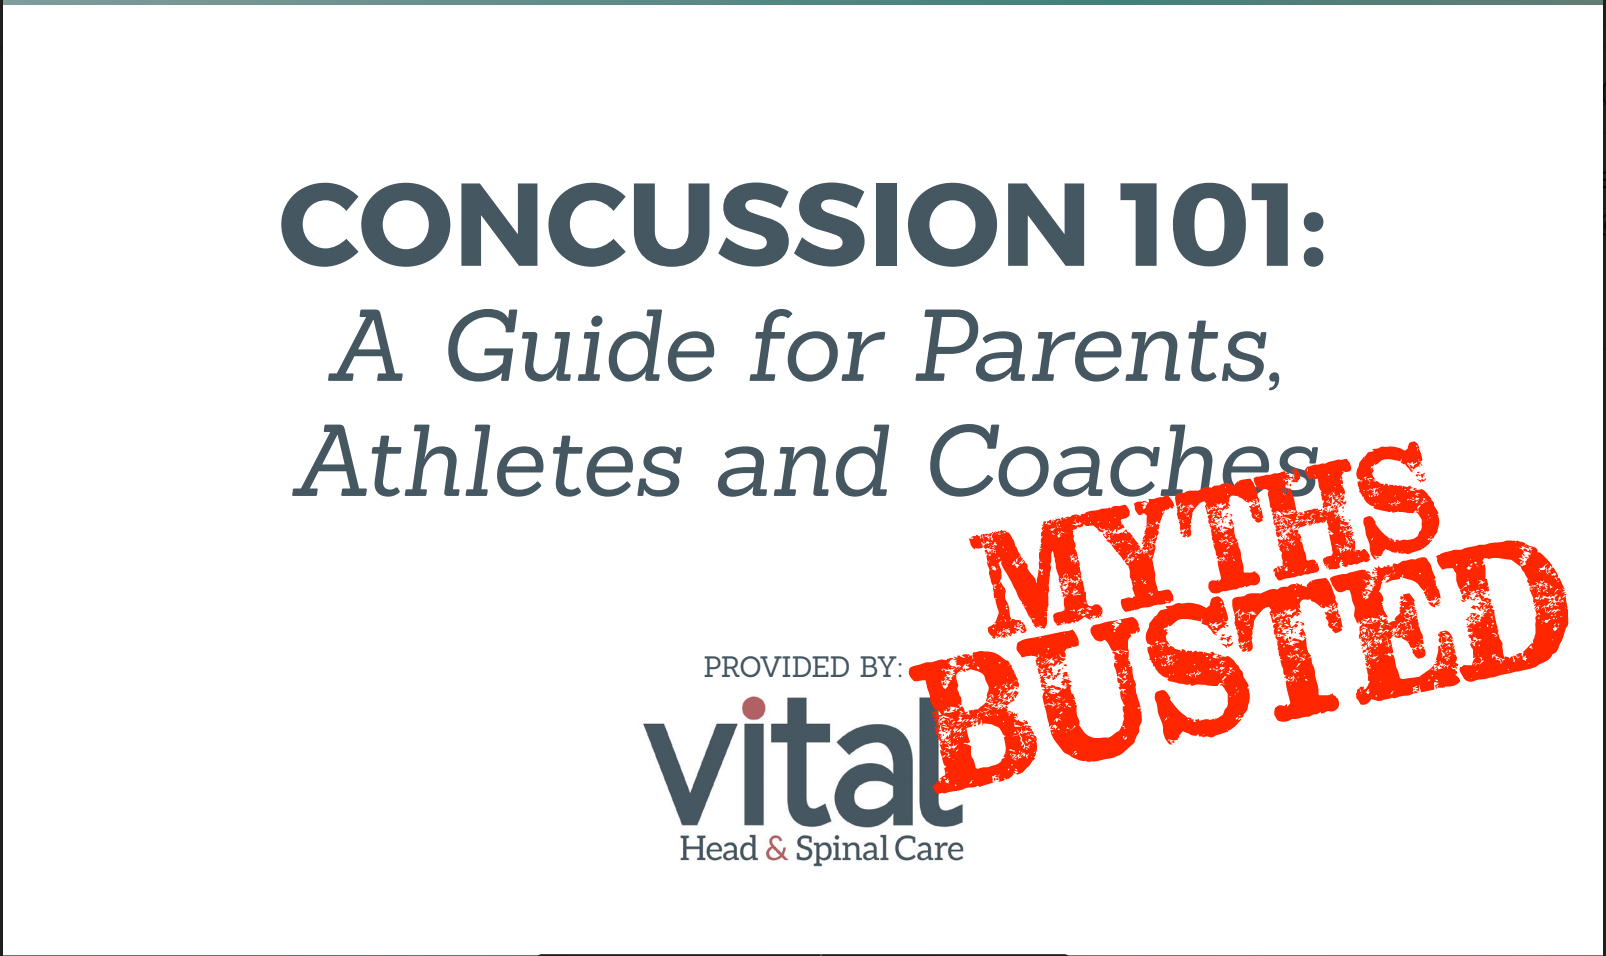 Concussion 101 Myths Busted.jpg